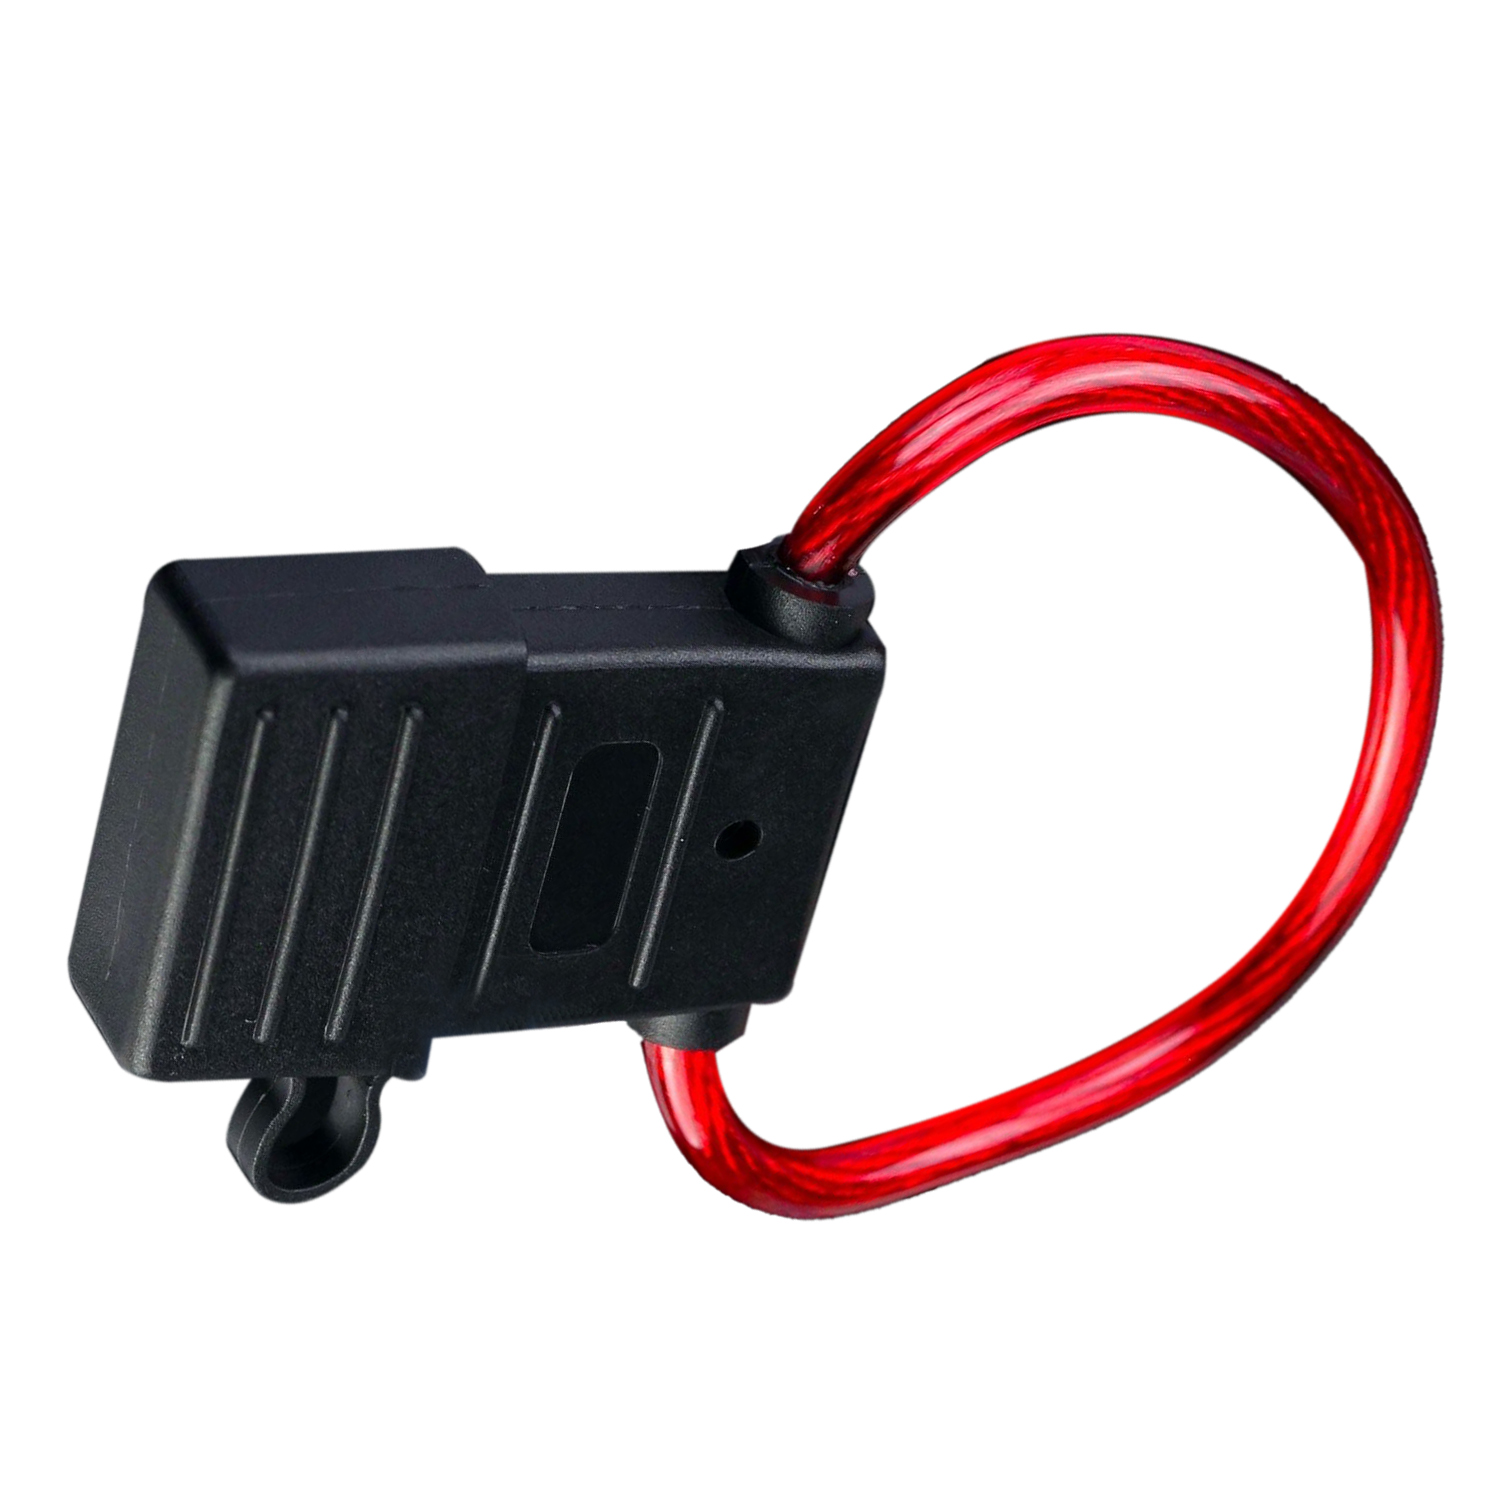 2 Pack 8 Gauge Maxi In Line Fuse Holder 100 Ofc Copper Wire Waterproof Block Wiring Multi Stranded Oxygen Free Holders Awg